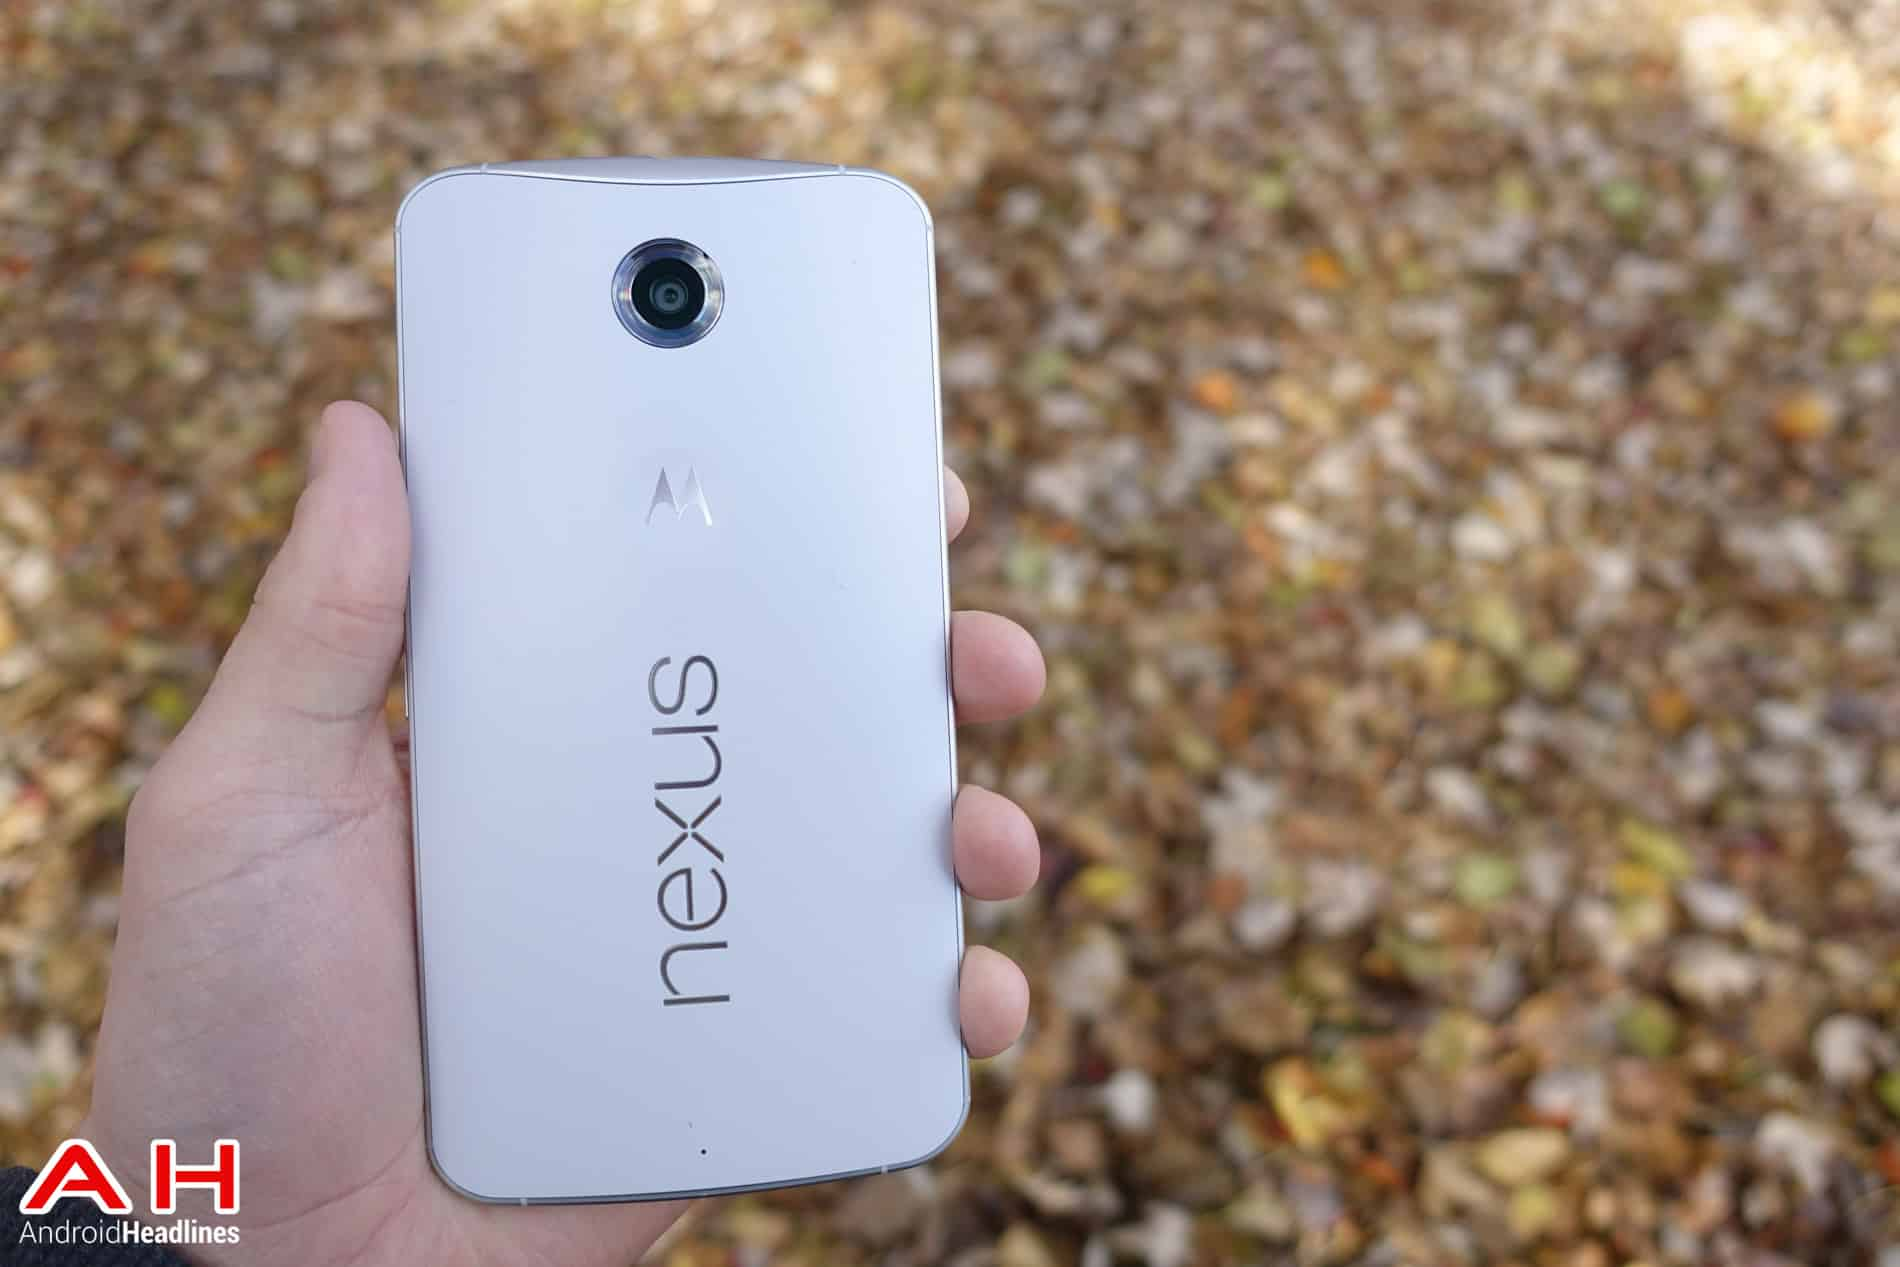 Some Nexus 6 users reporting failure of Mobile Data Connection